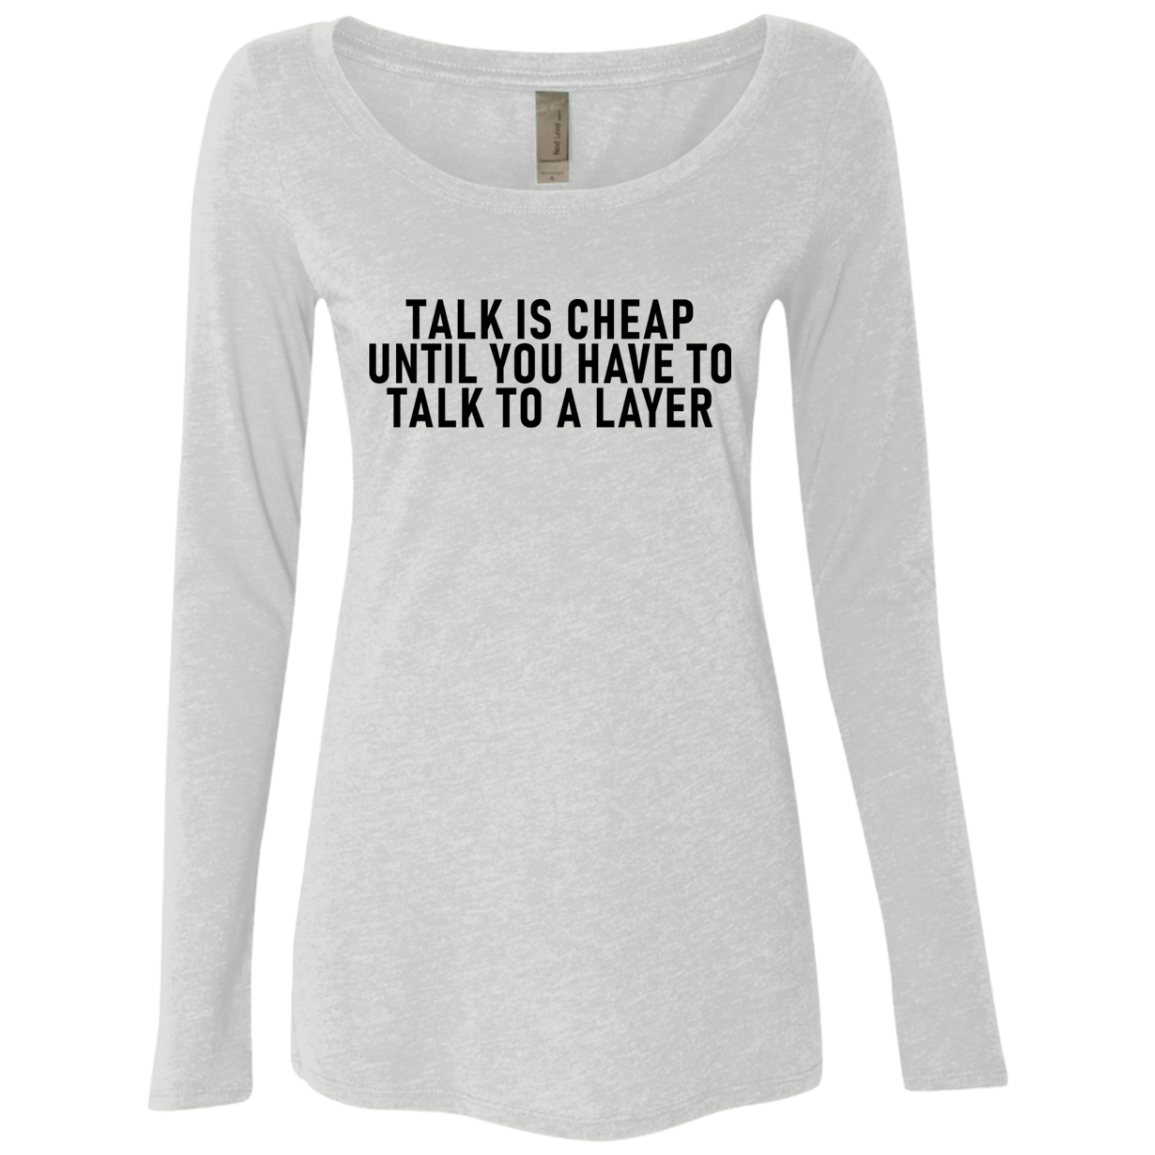 Talk Is Cheap Until You Have To Talk With A Lawyer Women's Long Sleeve Tee